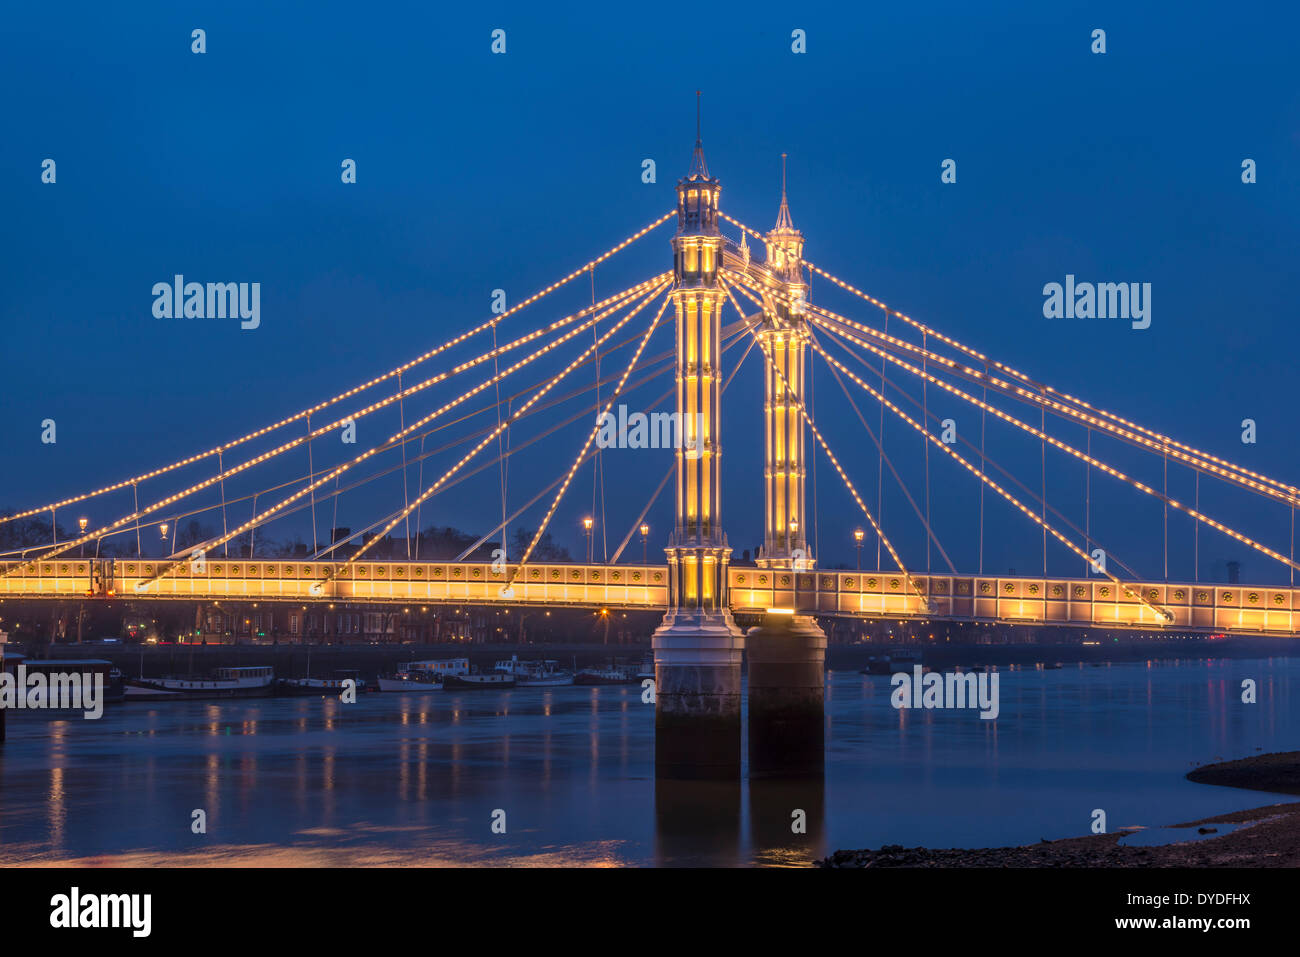 A view of Albert Bridge at night time. - Stock Image